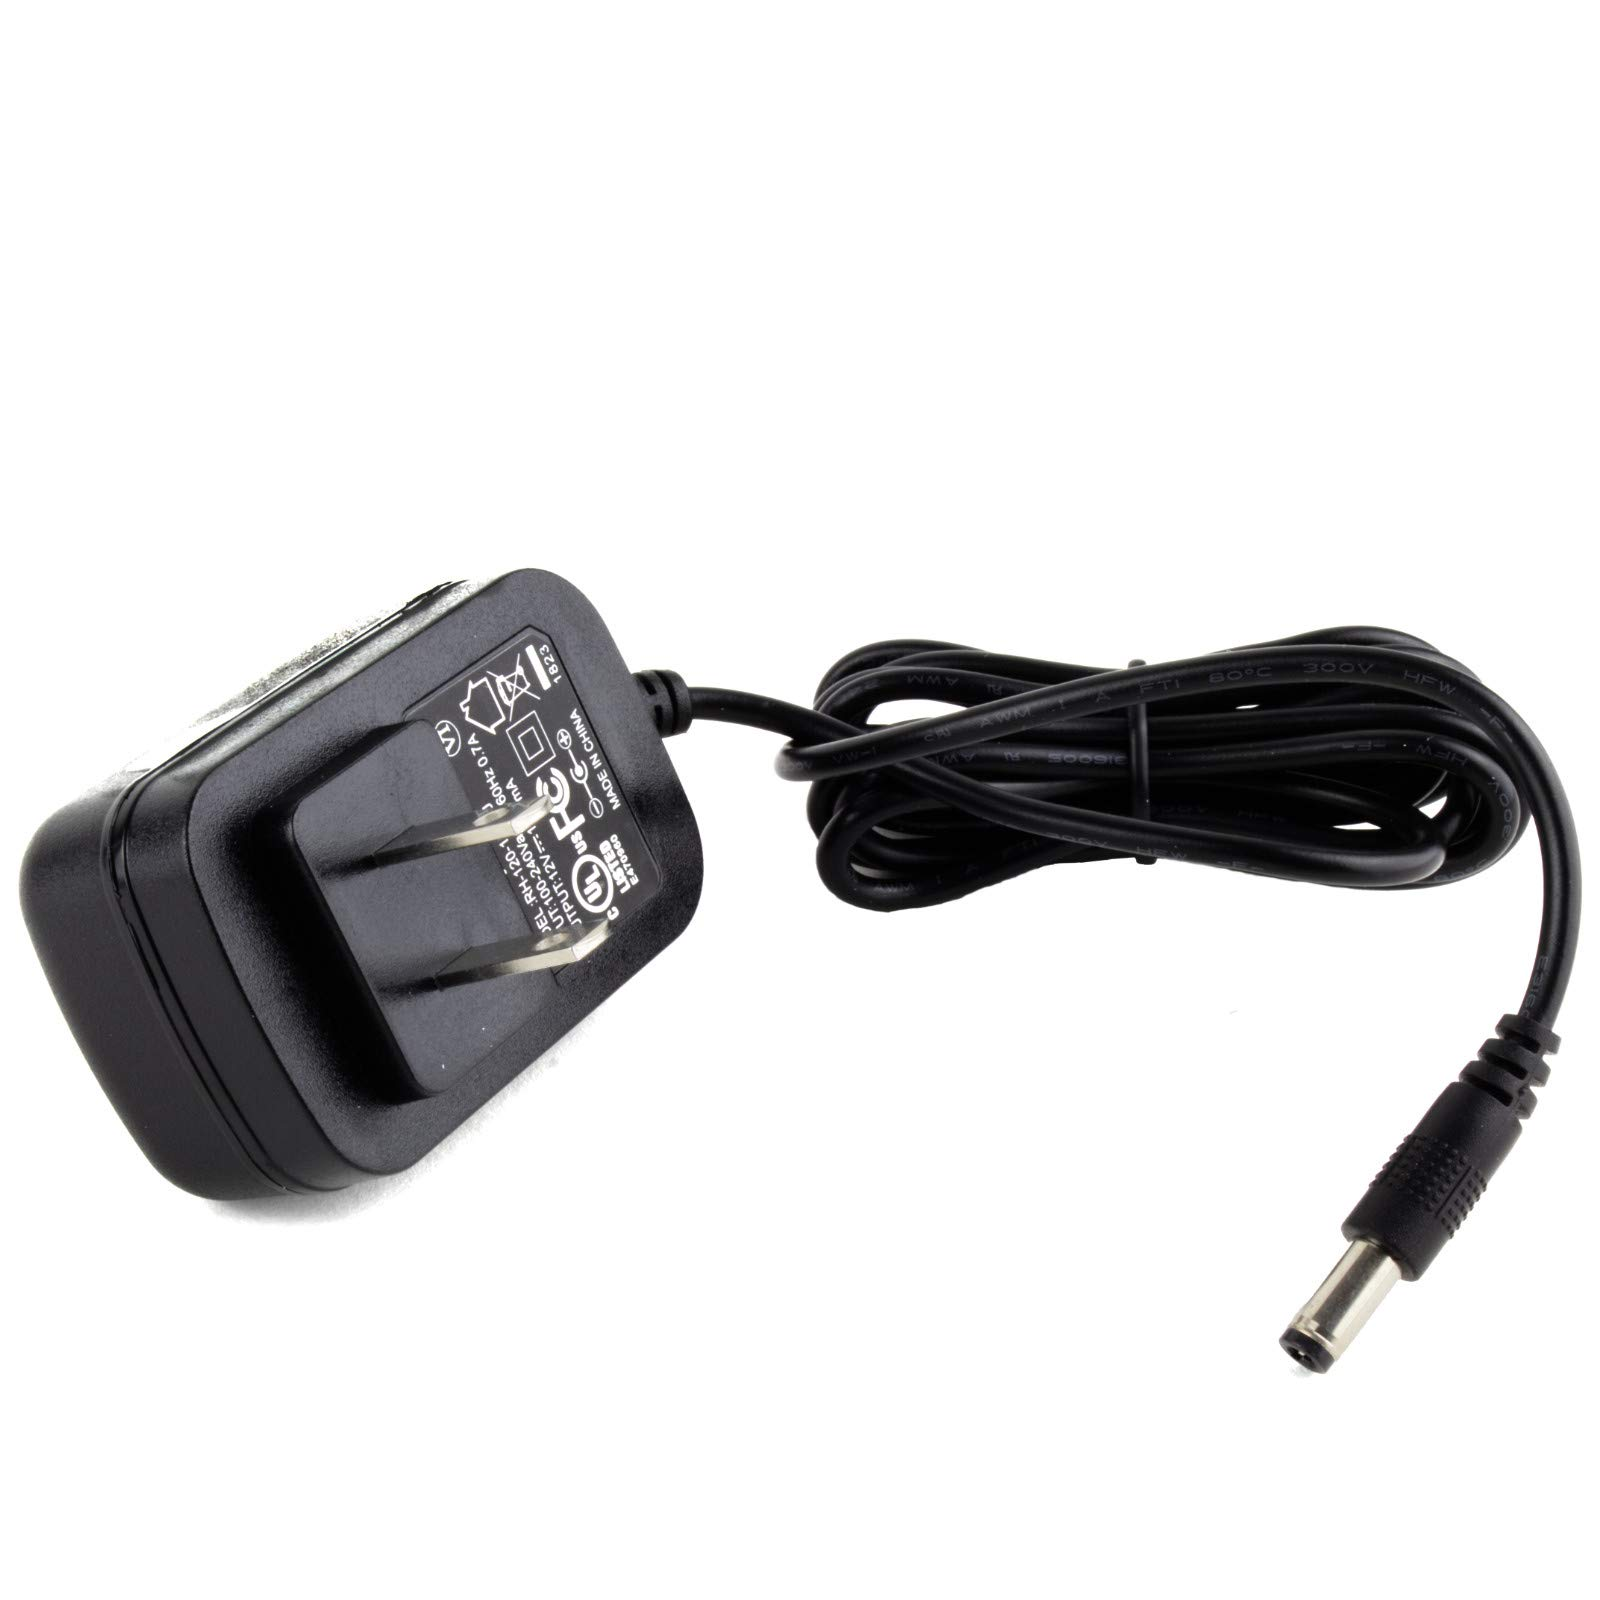 9V Roland RS-9/RS-5 Synth replacement power supply adaptor - US plug